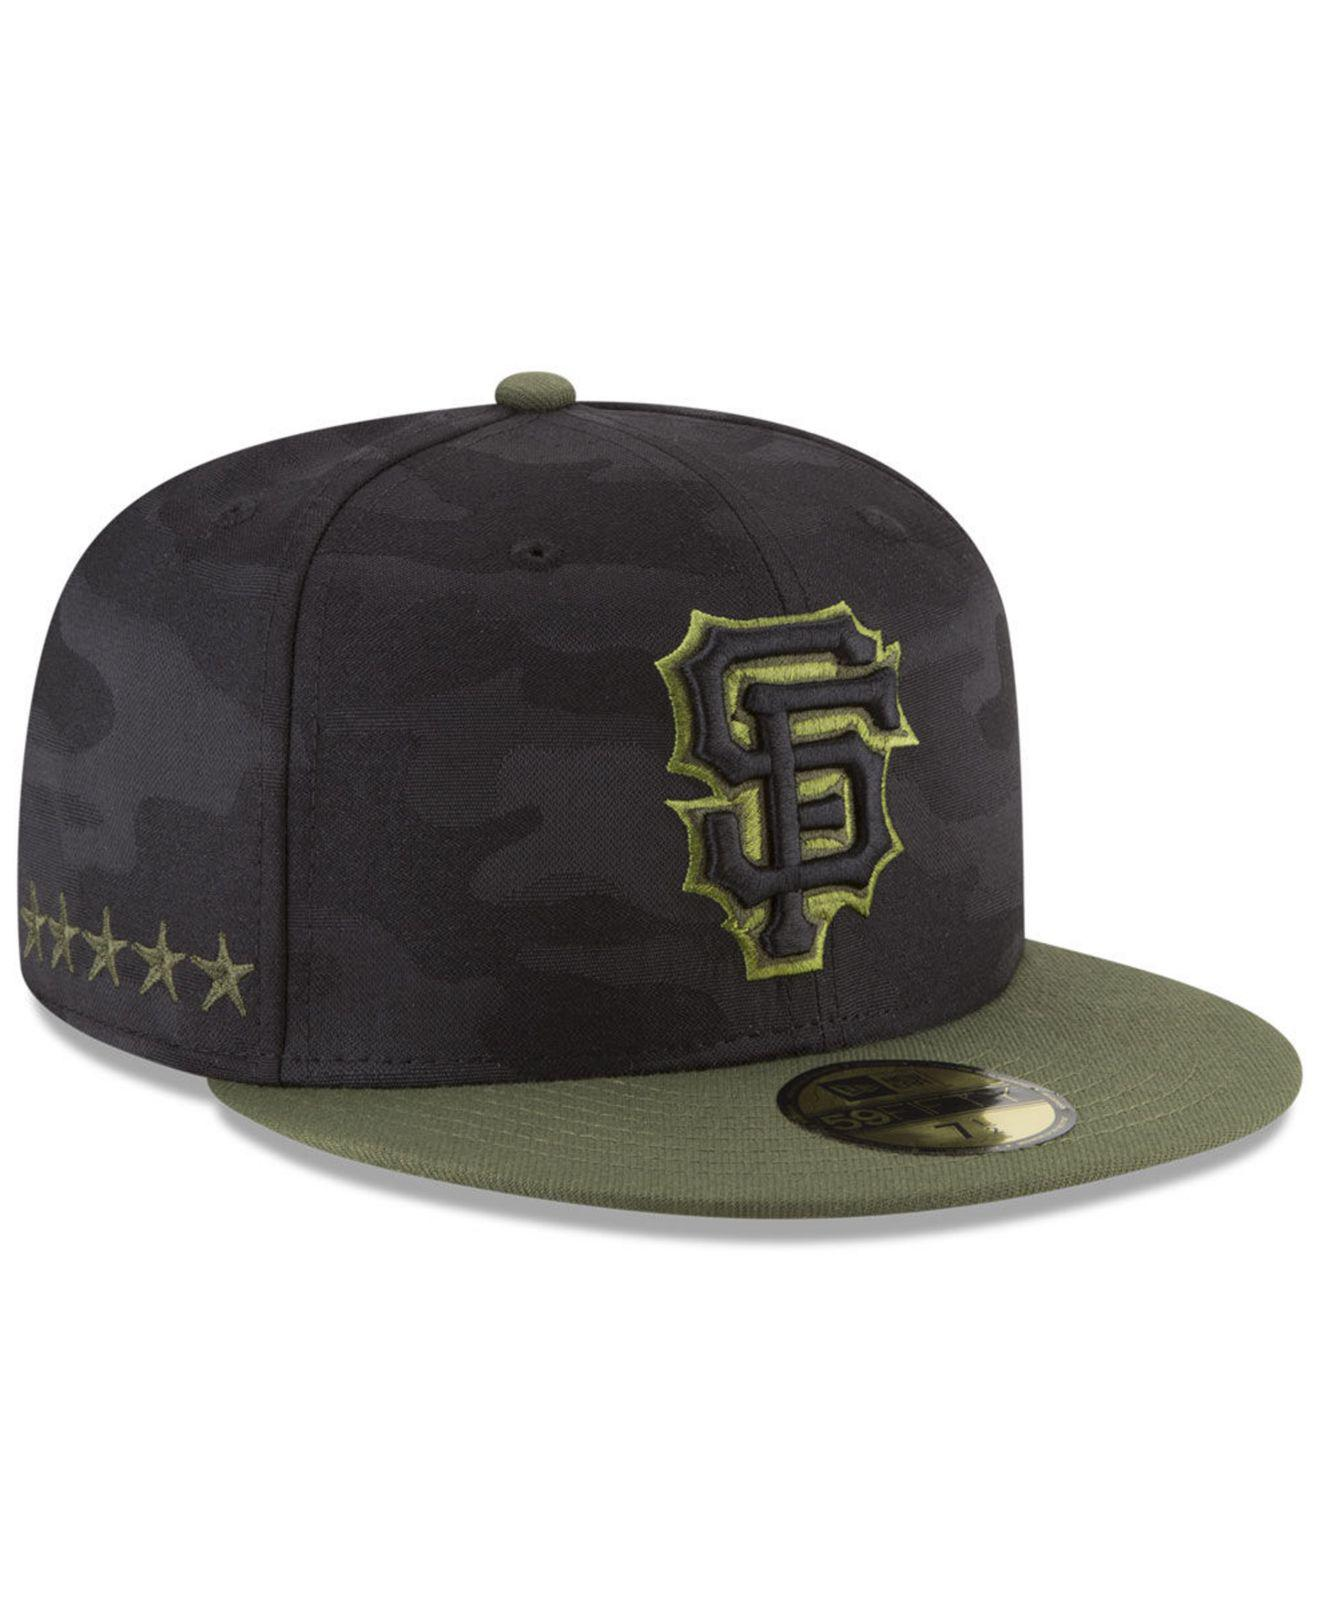 hot sale online cc3a8 034f7 ... promo code for ktz. mens black san francisco giants memorial day 59fifty  fitted cap 91c18